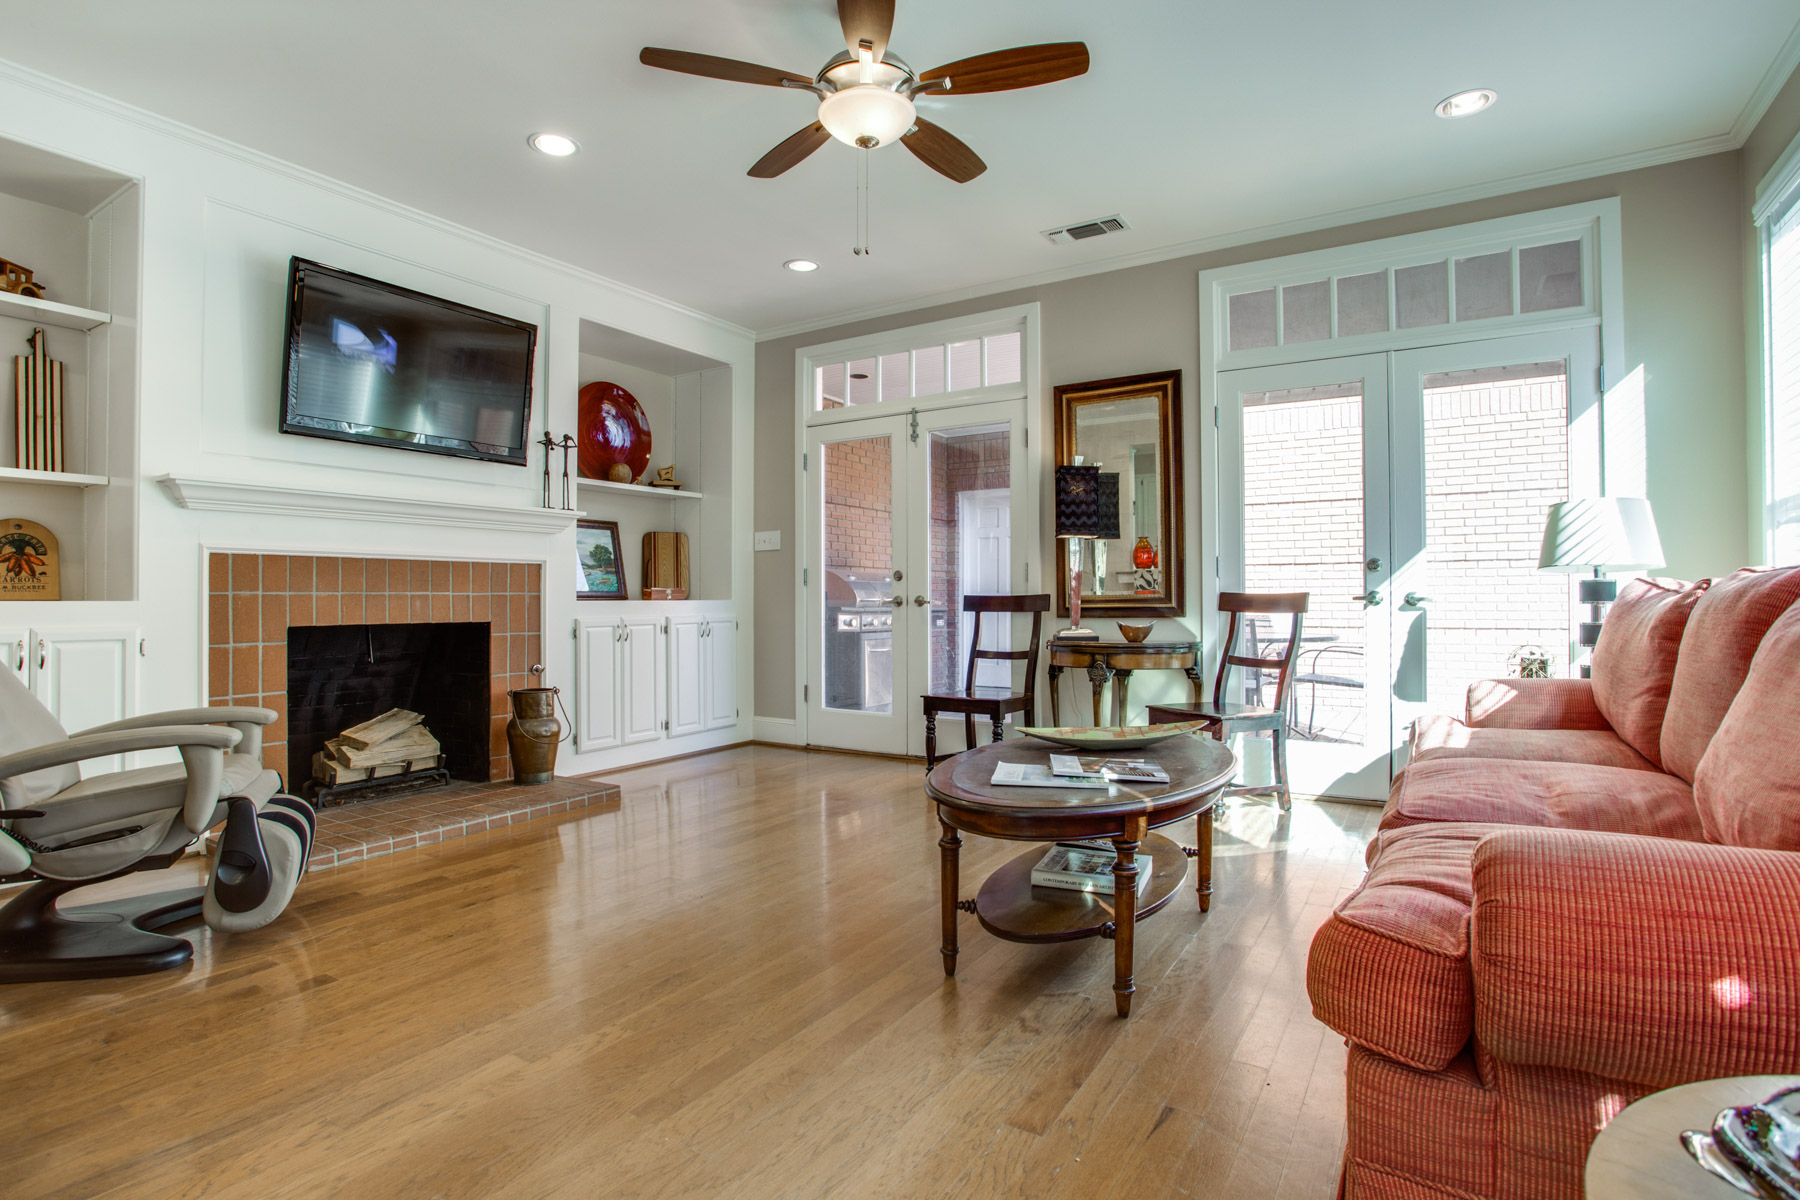 Single Family Home for Sale at Desirable University Park Single Family Attached 3420 Binkley Avenue Dallas, Texas, 75205 United States